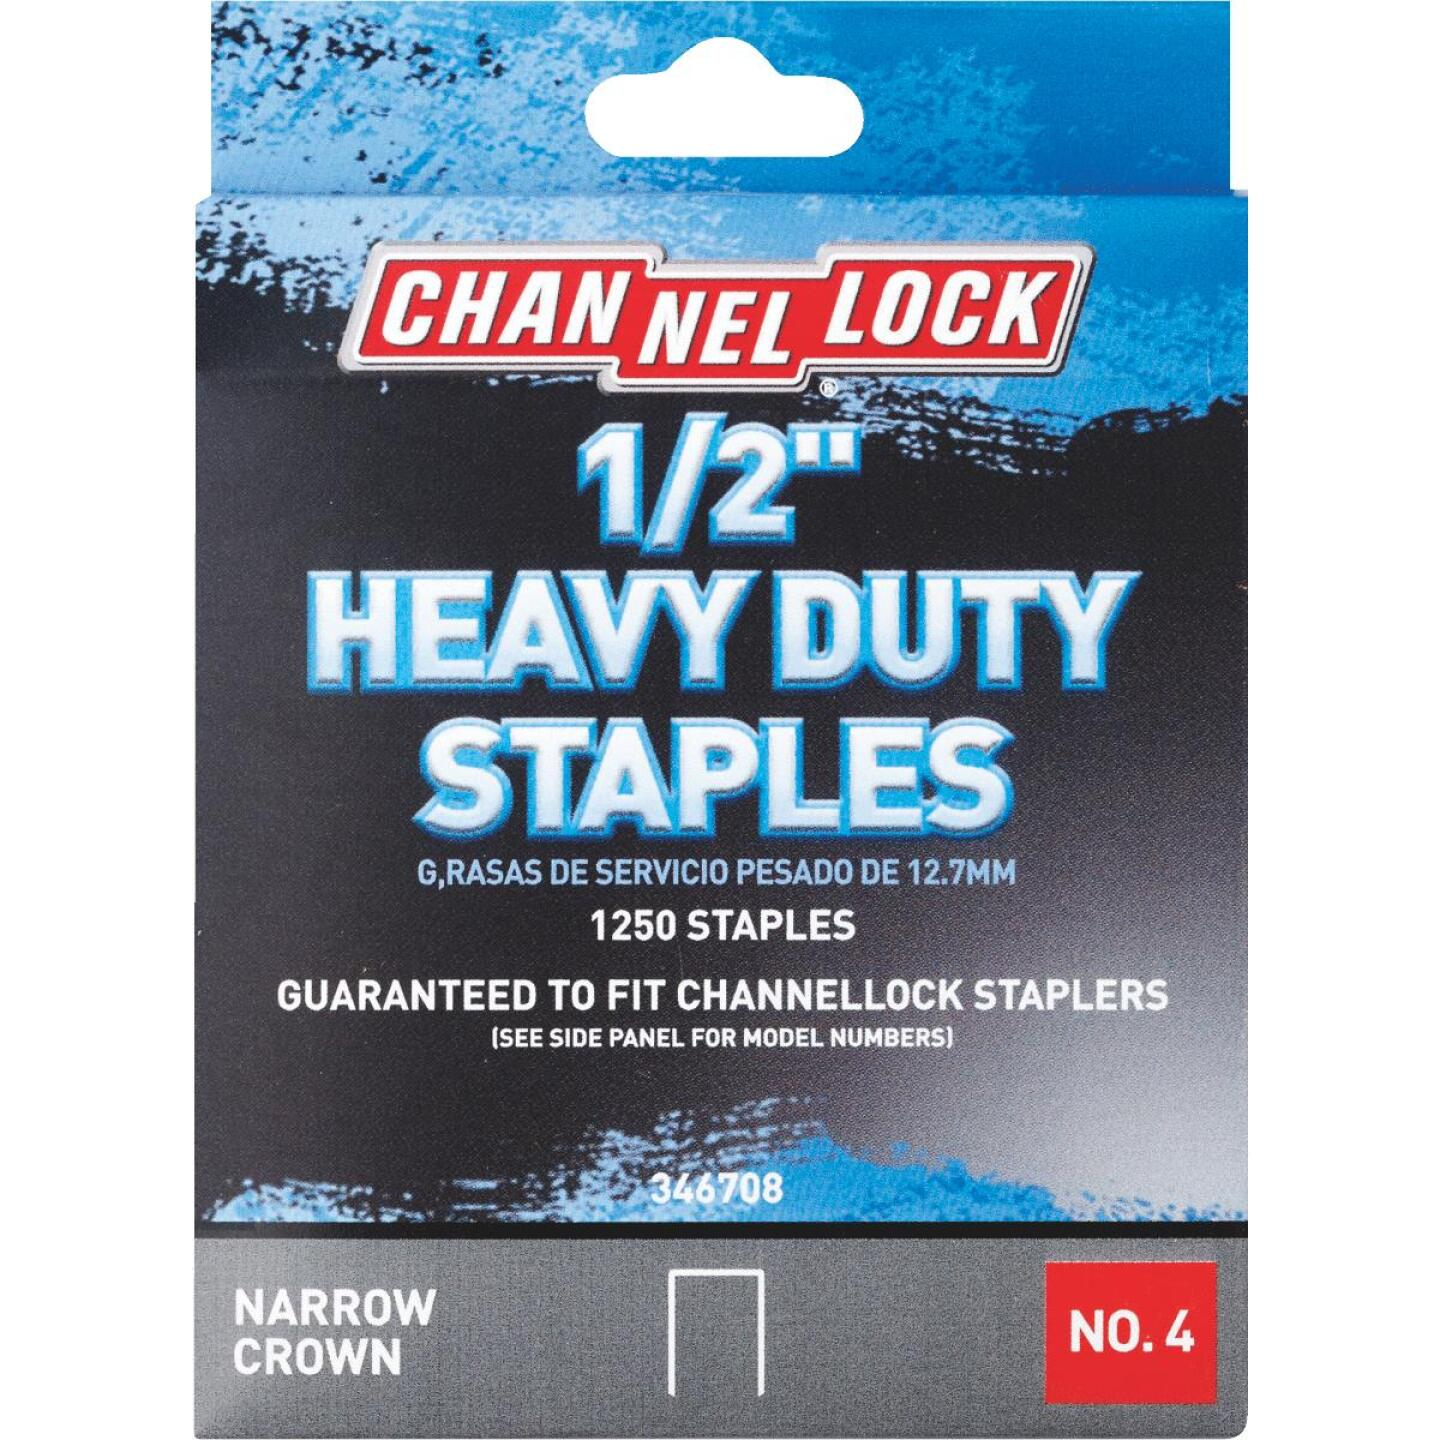 Channellock No. 4 Heavy-Duty Narrow Crown Staple, 1/2 In. (1250-Pack) Image 1